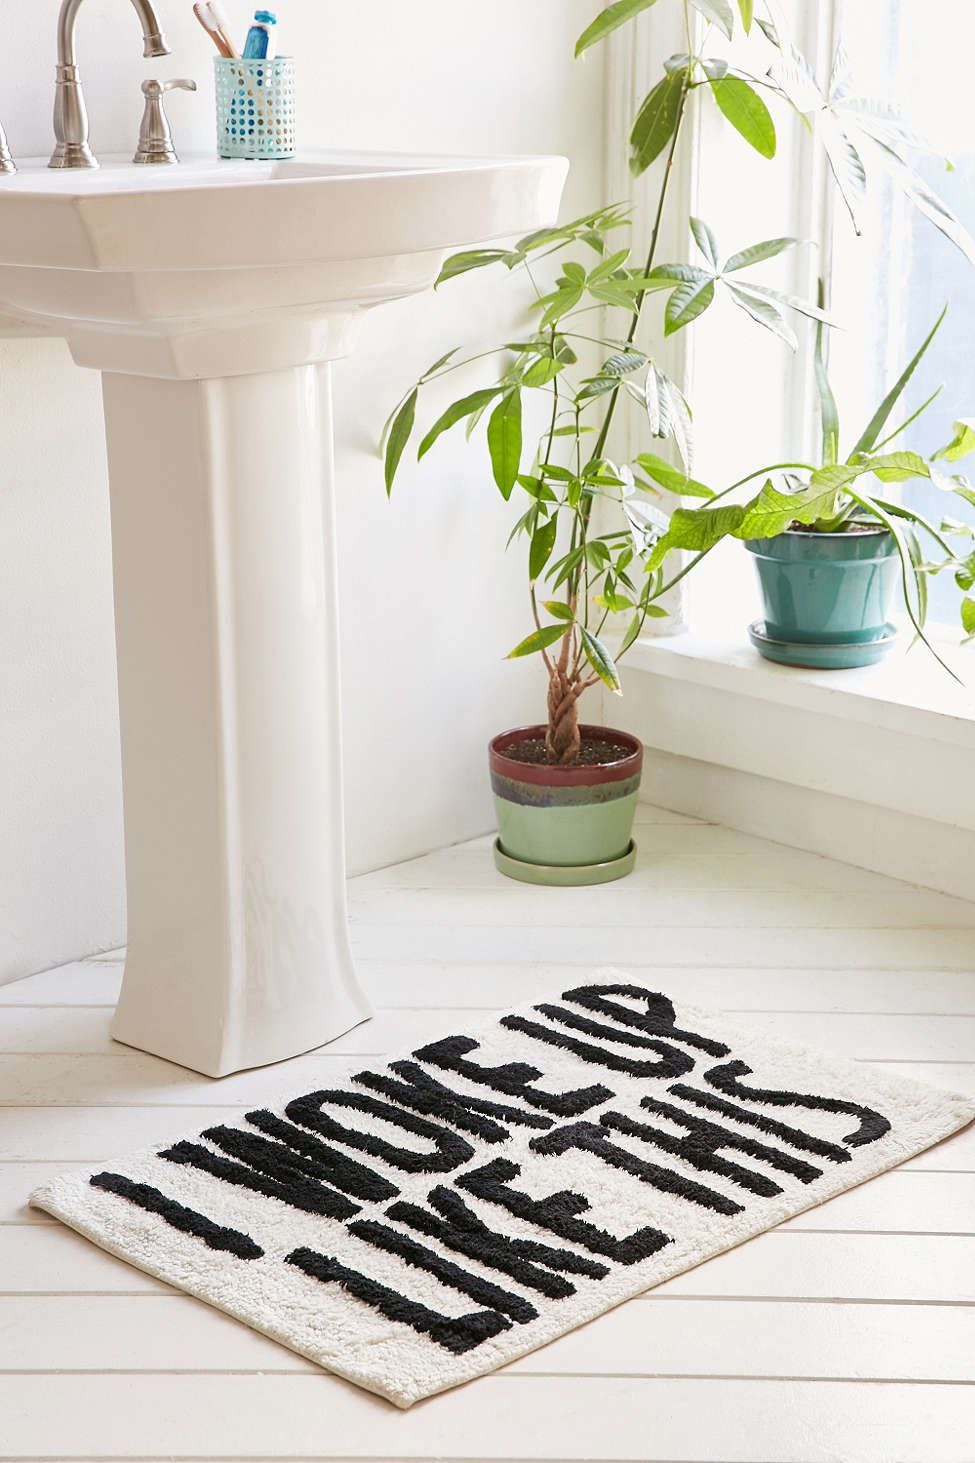 I Woke Up Like This Bath Mat Bath Mats Bath Mat And Urban - Long bath mats and rugs for bathroom decorating ideas